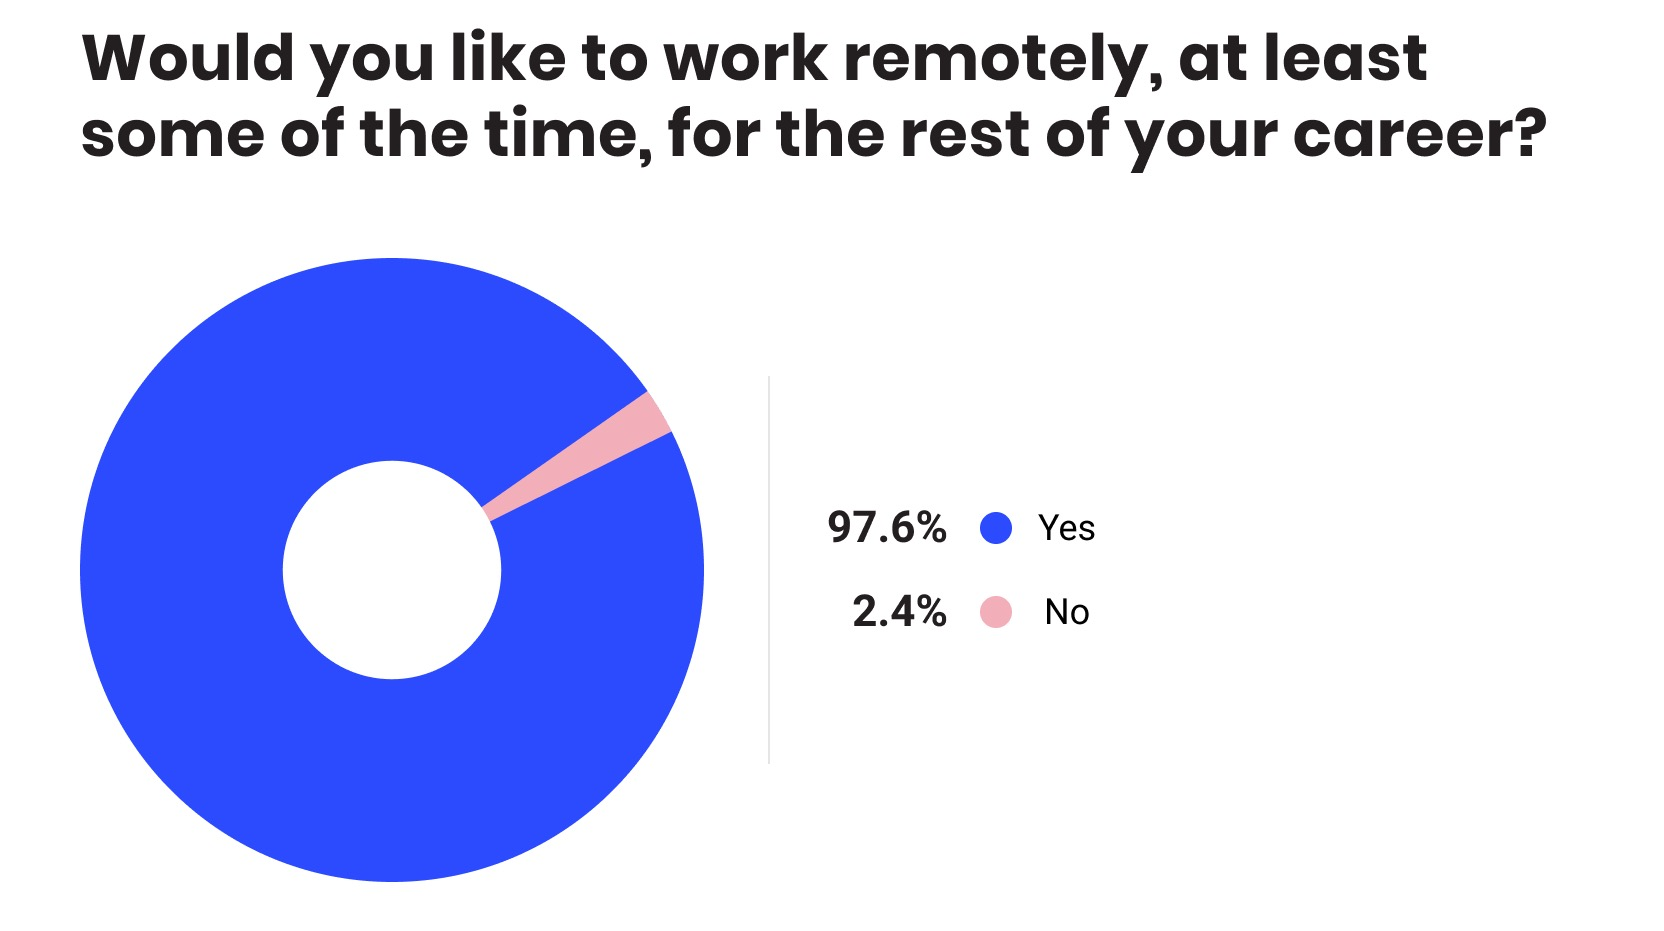 Pajdiagram: Would you like to work remotely at least some of the time for the rest of your career